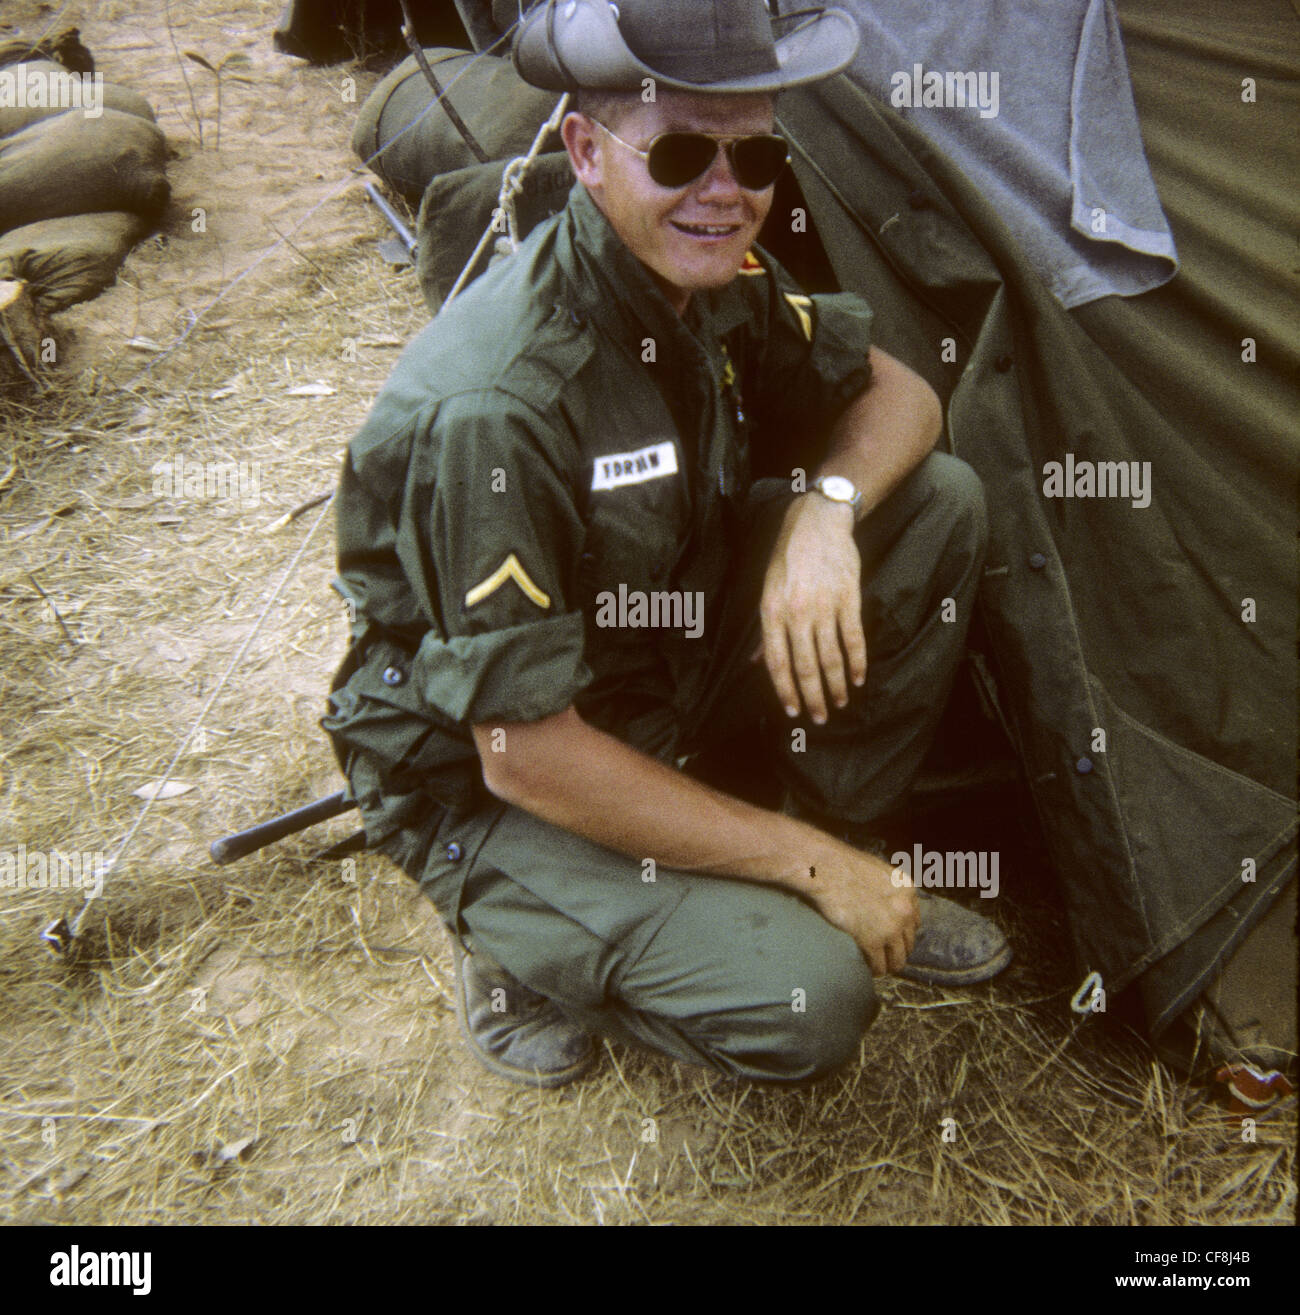 M113 Vietnam Stock Photos Amp M113 Vietnam Stock Images